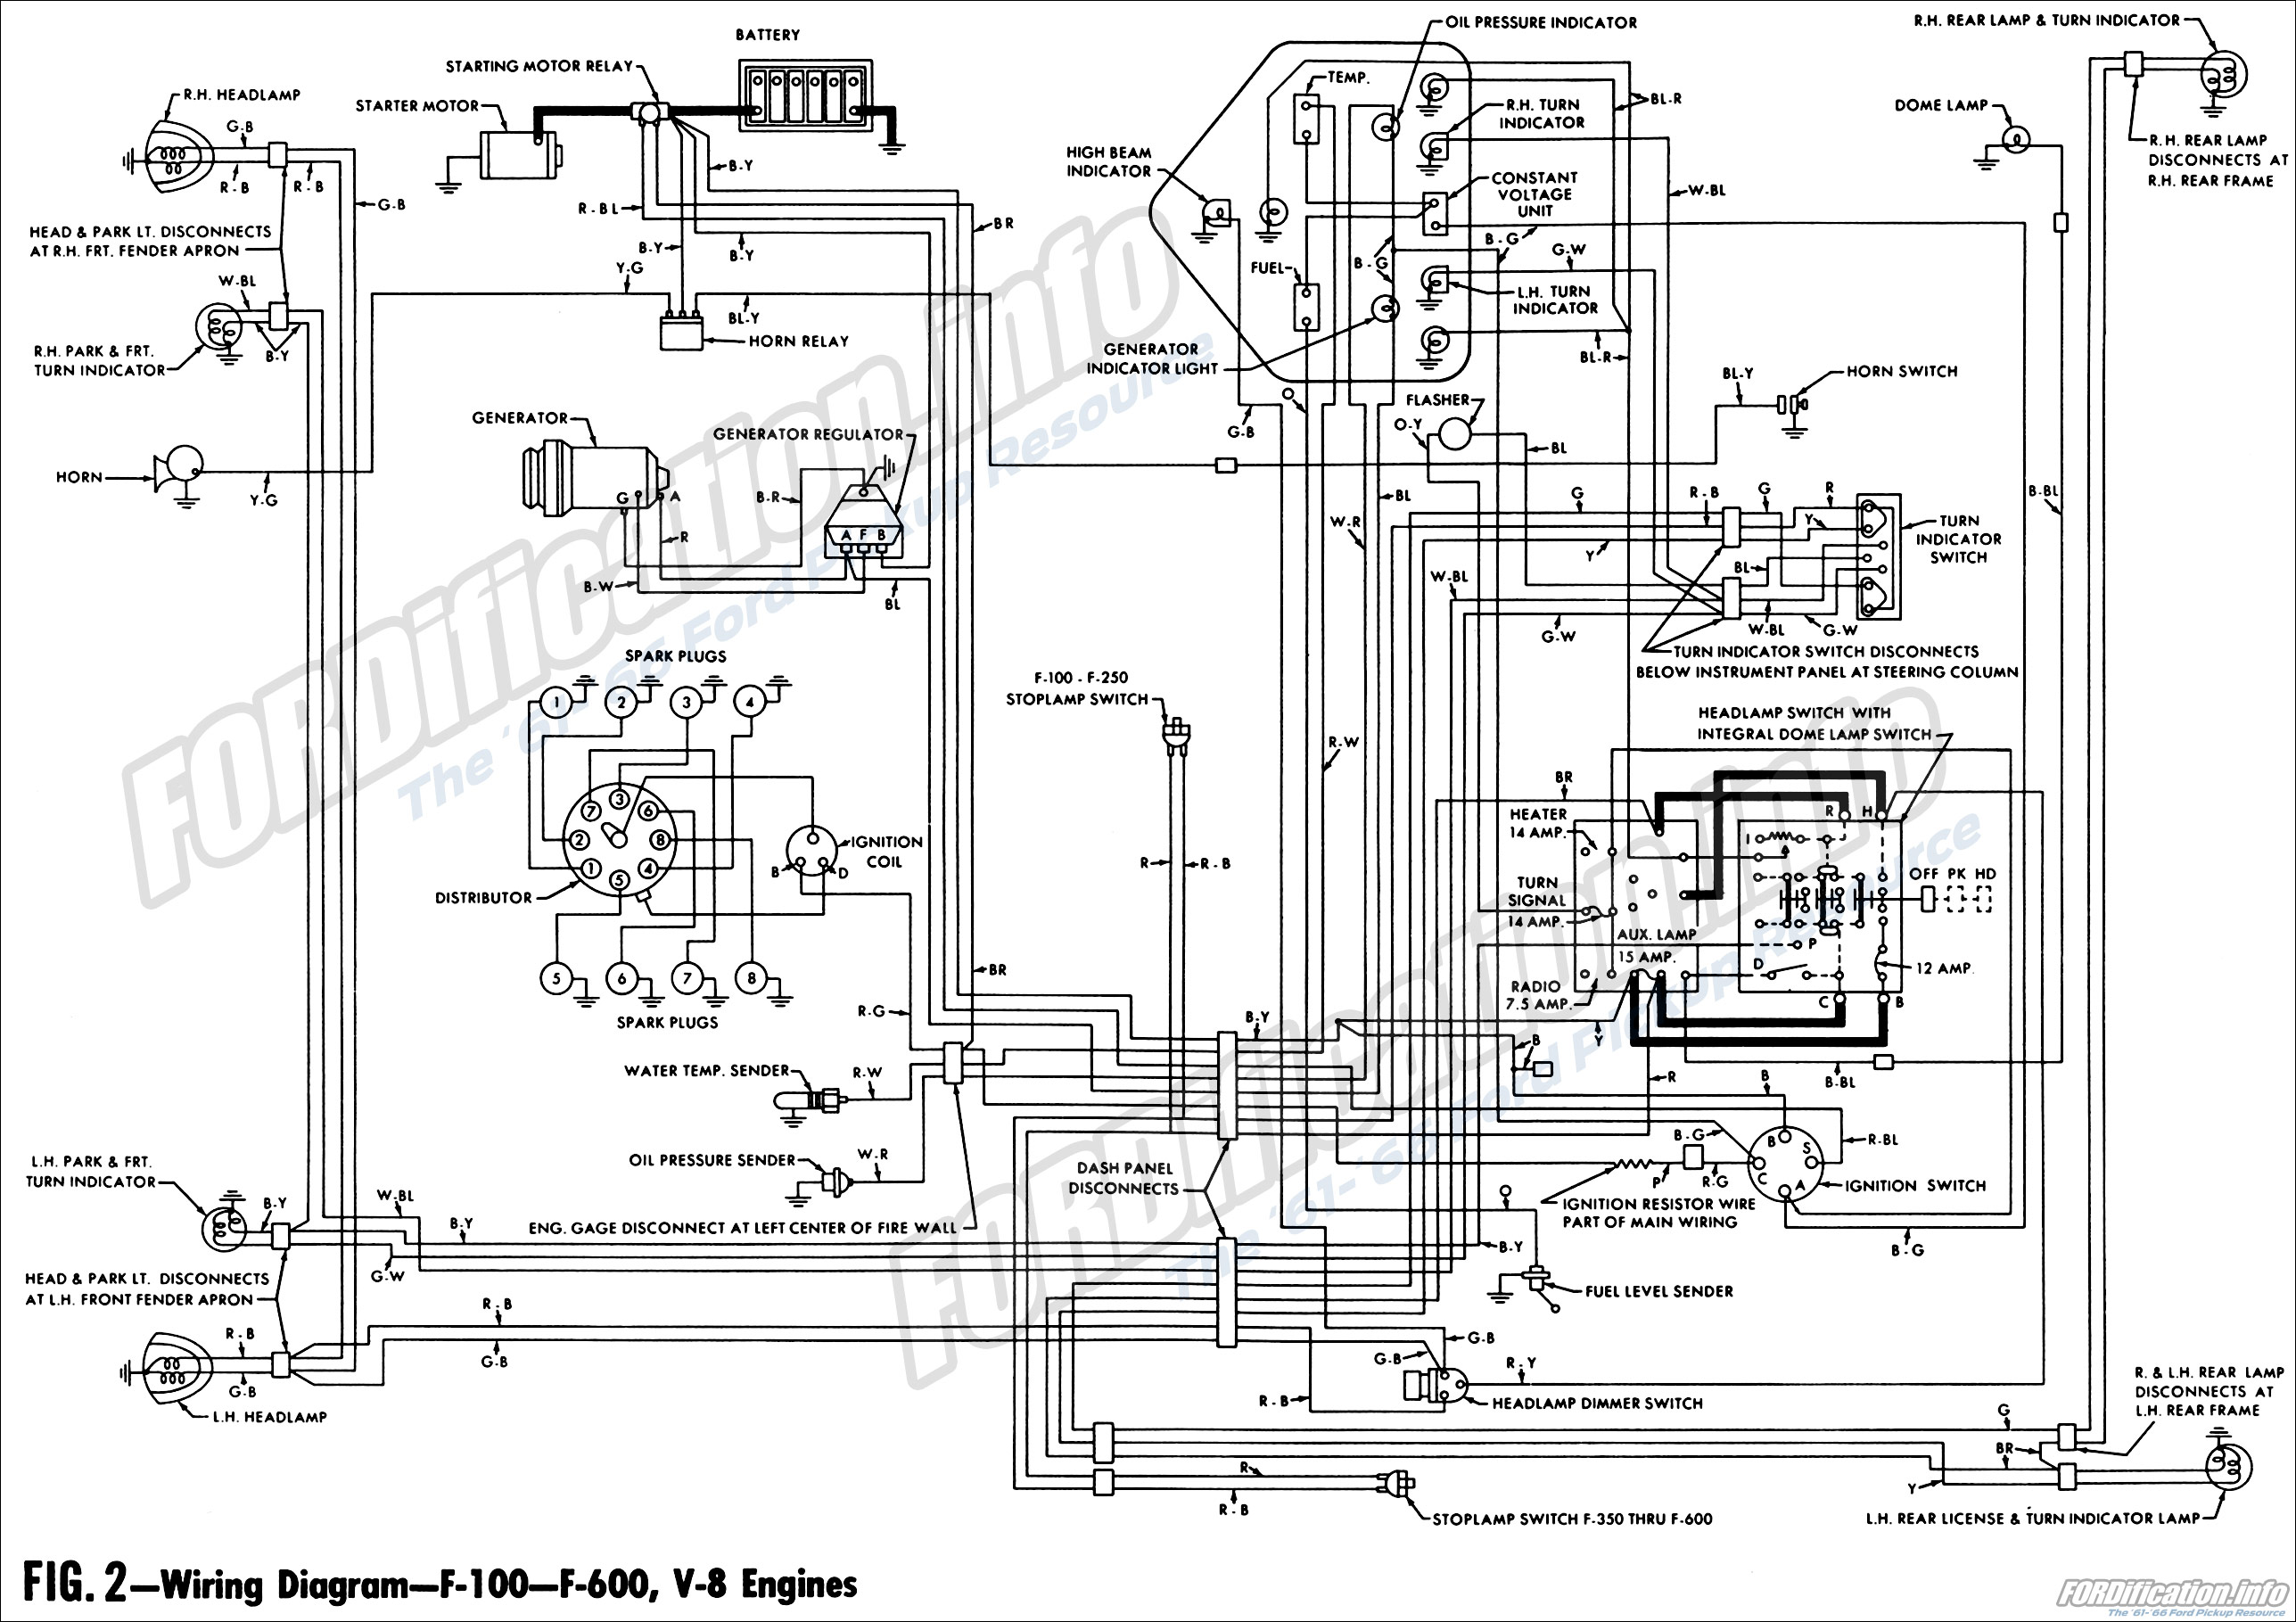 1961 Ford Truck Wiring Diagrams - Fordification Info